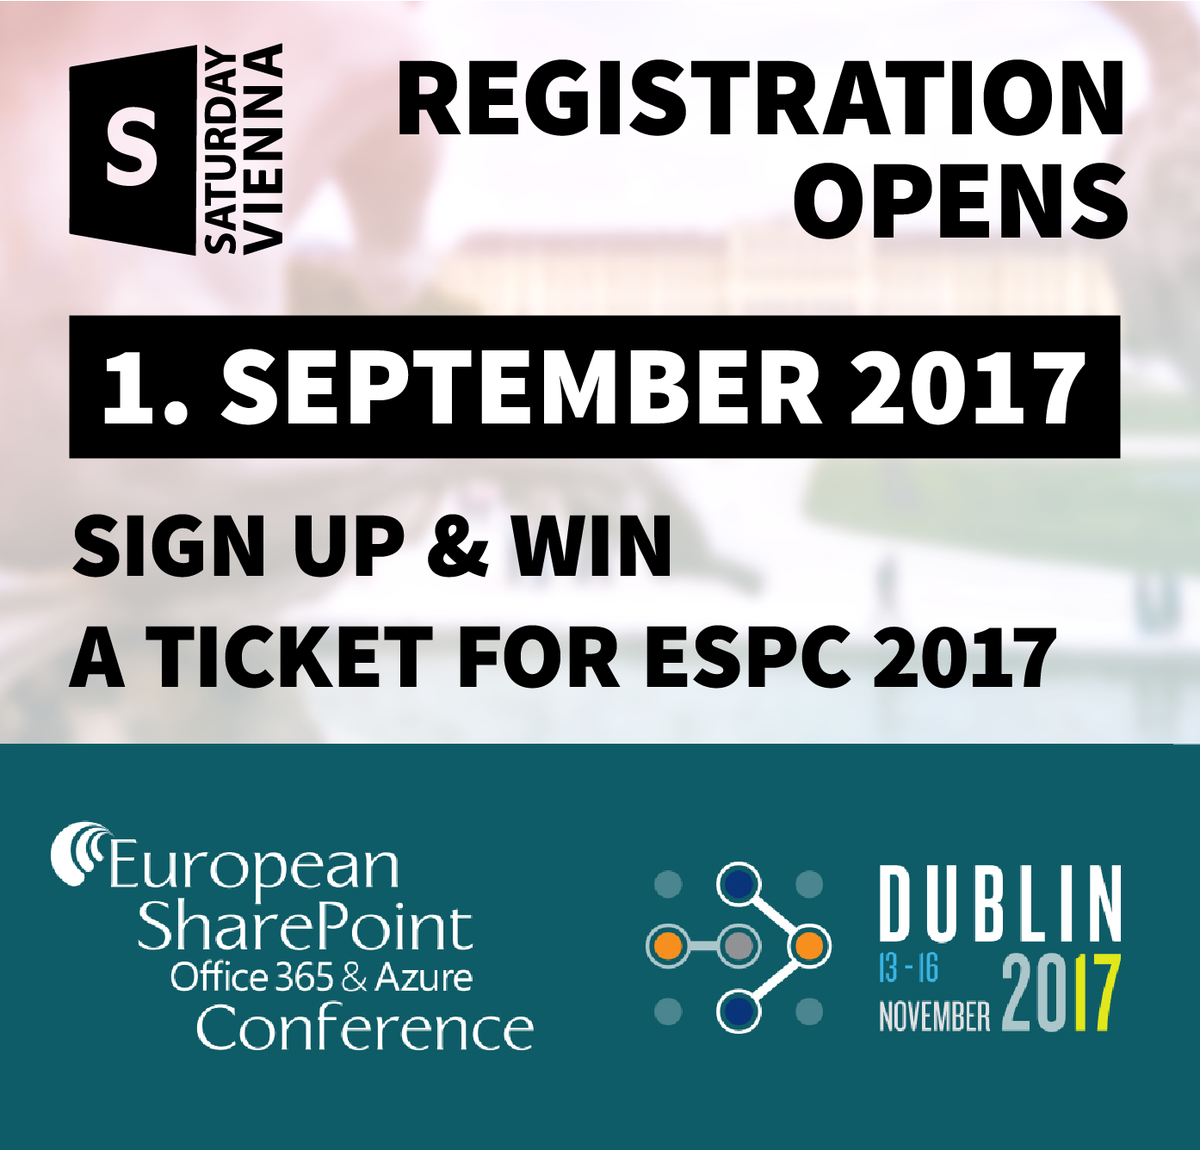 Register to SharePoint Saturday Vienna, win 1 ticket for ESPC17 and meet sponsor dox42 at both events!